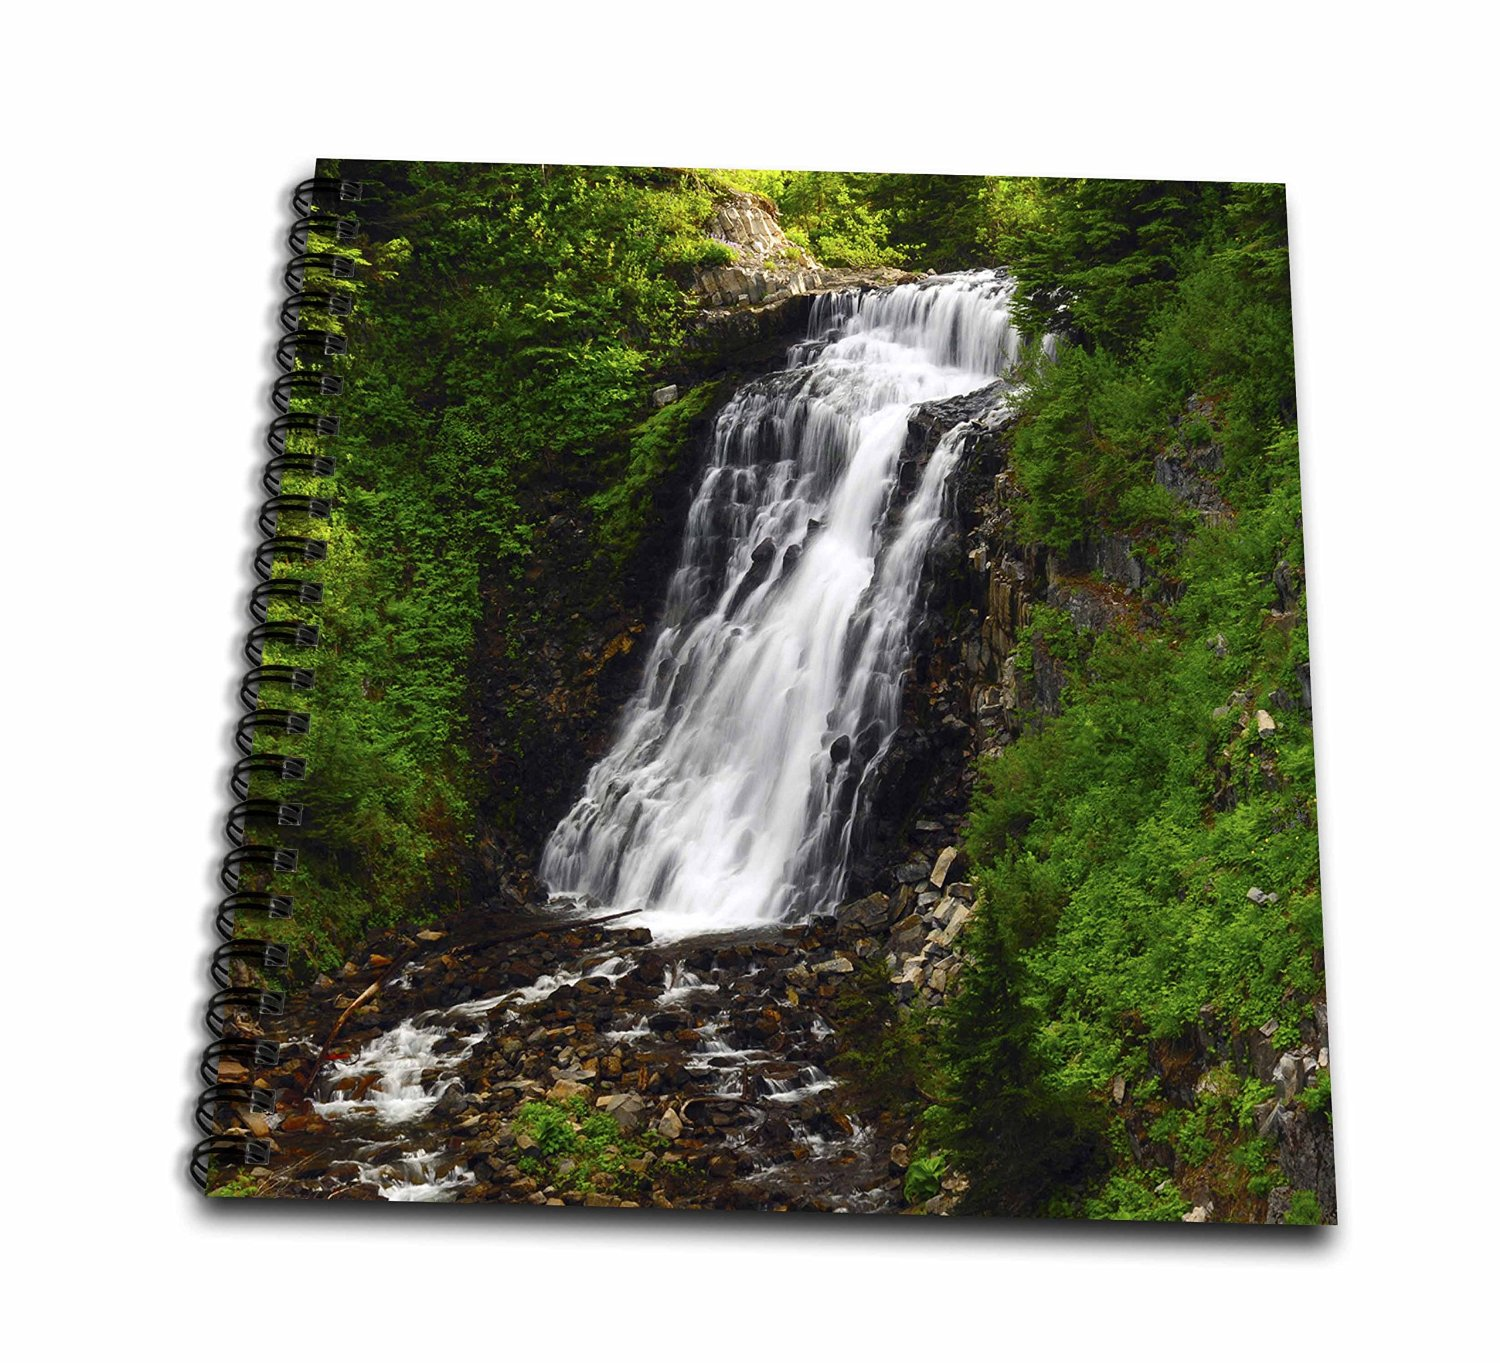 Danita Delimont - Waterfalls - Galena Creek Falls, Waterfalls, Washington, USA - US48 MHE0040 - Michel Hersen - Memory Book 12 x 12 inch (db_148382_2)